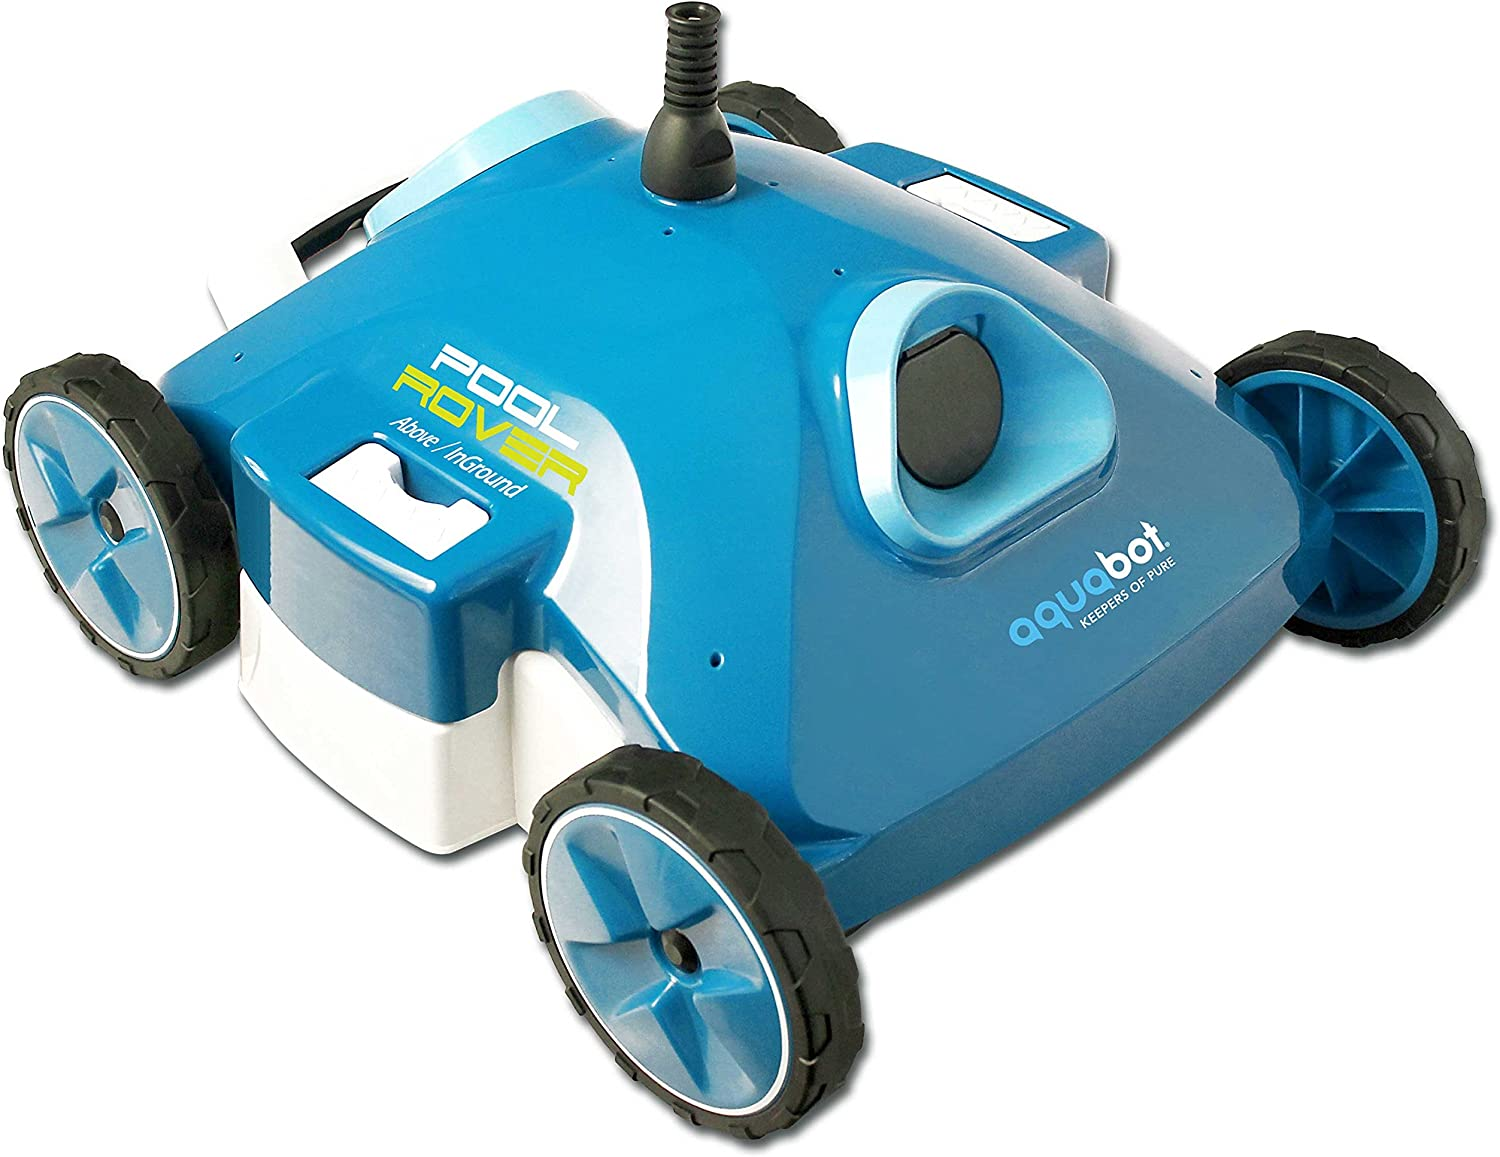 Aquabot Pool Rover S2-40 AJET121 Above Ground Robotic Swimming Pool Cleaner